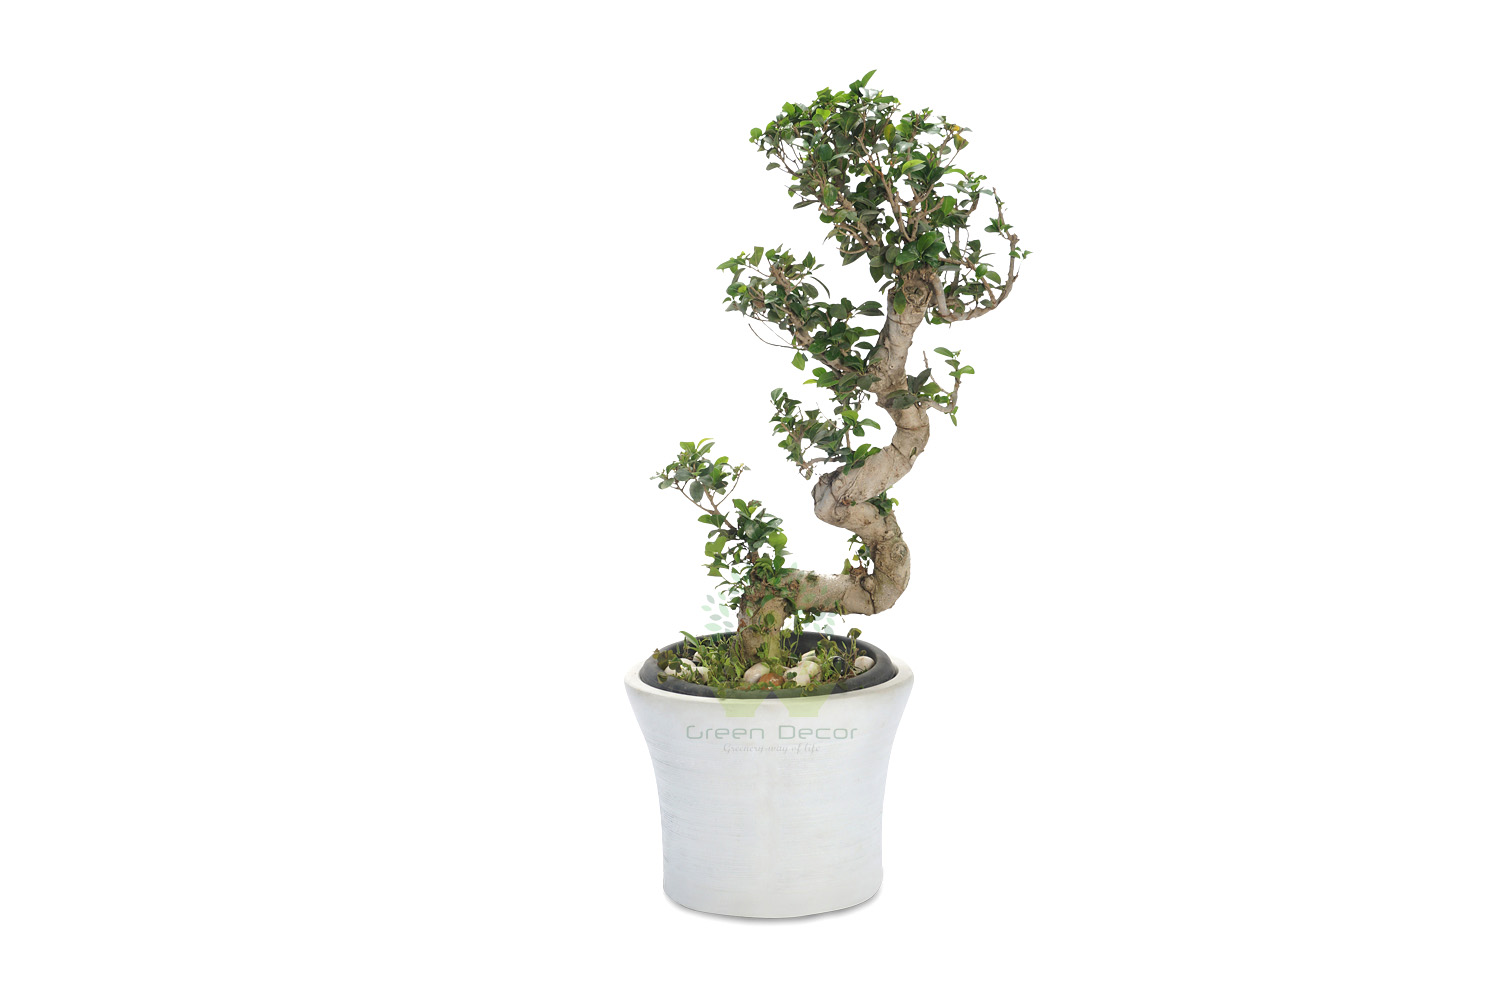 Buy Ficus Large Leaves Plant Front View, White Pots and Seeds in Delhi NCR by the best online nursery shop Greendecor.